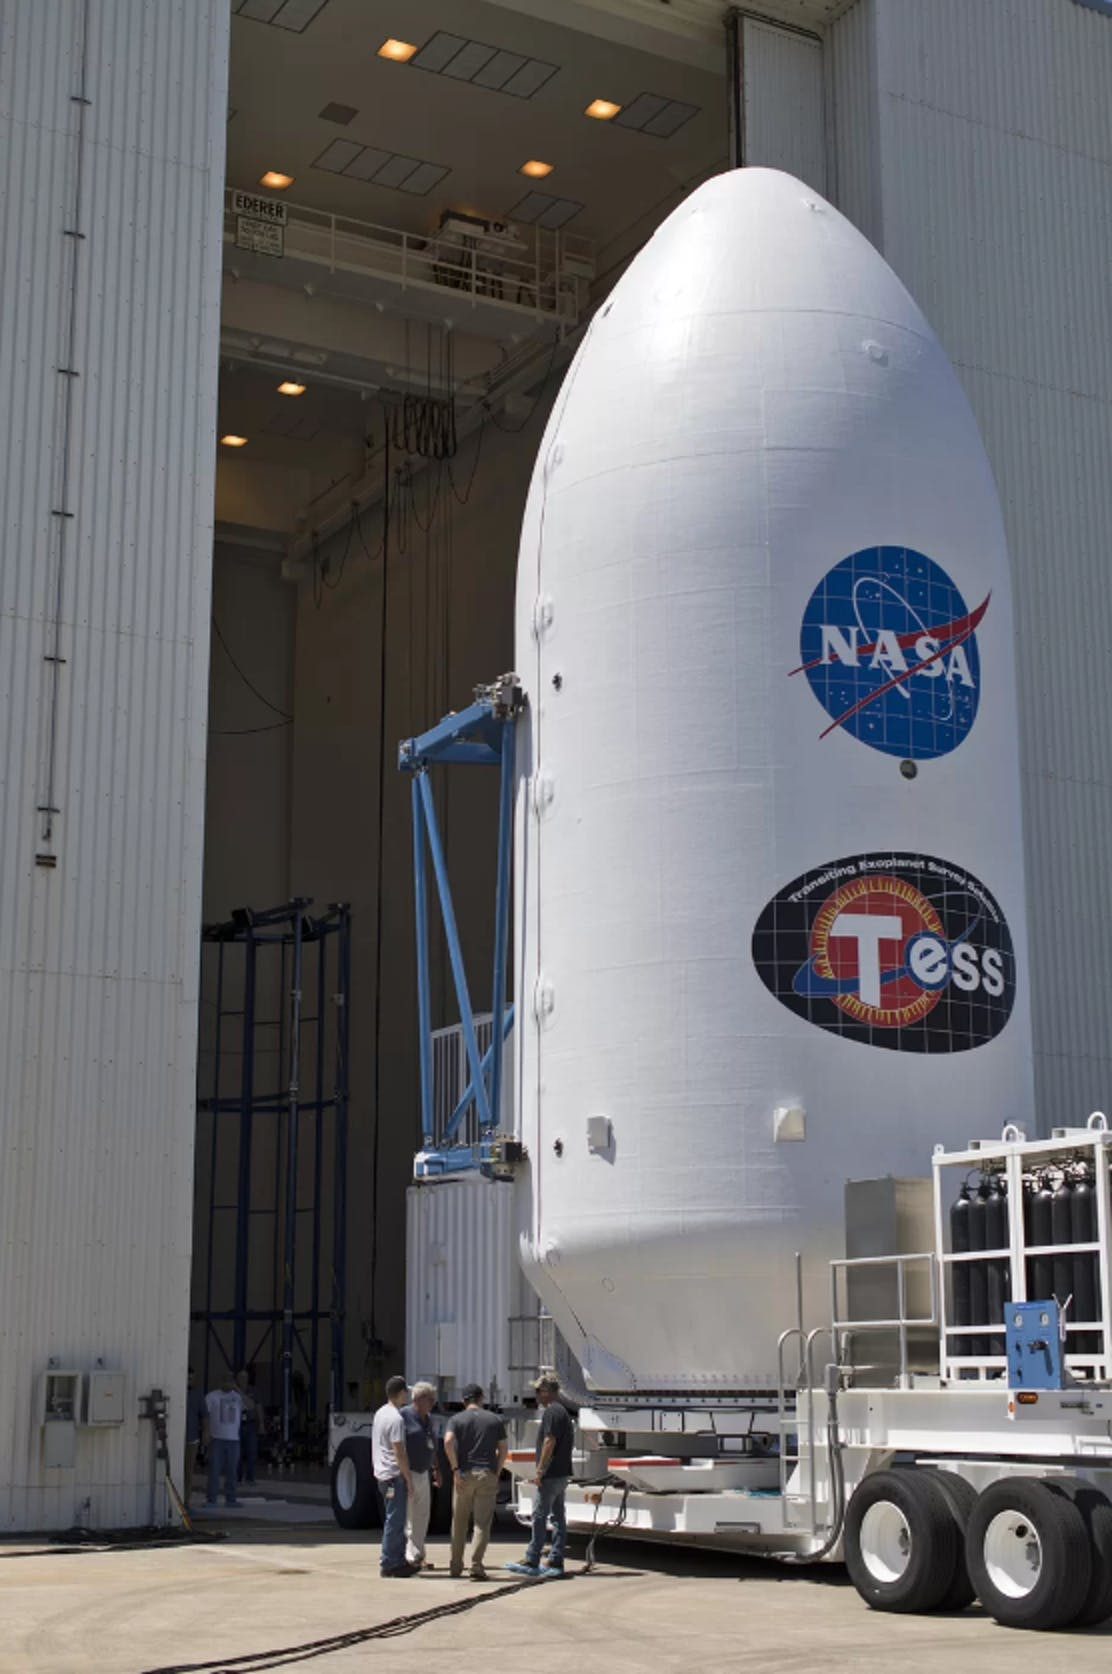 TESS at the Kennedy Space Center in Florida